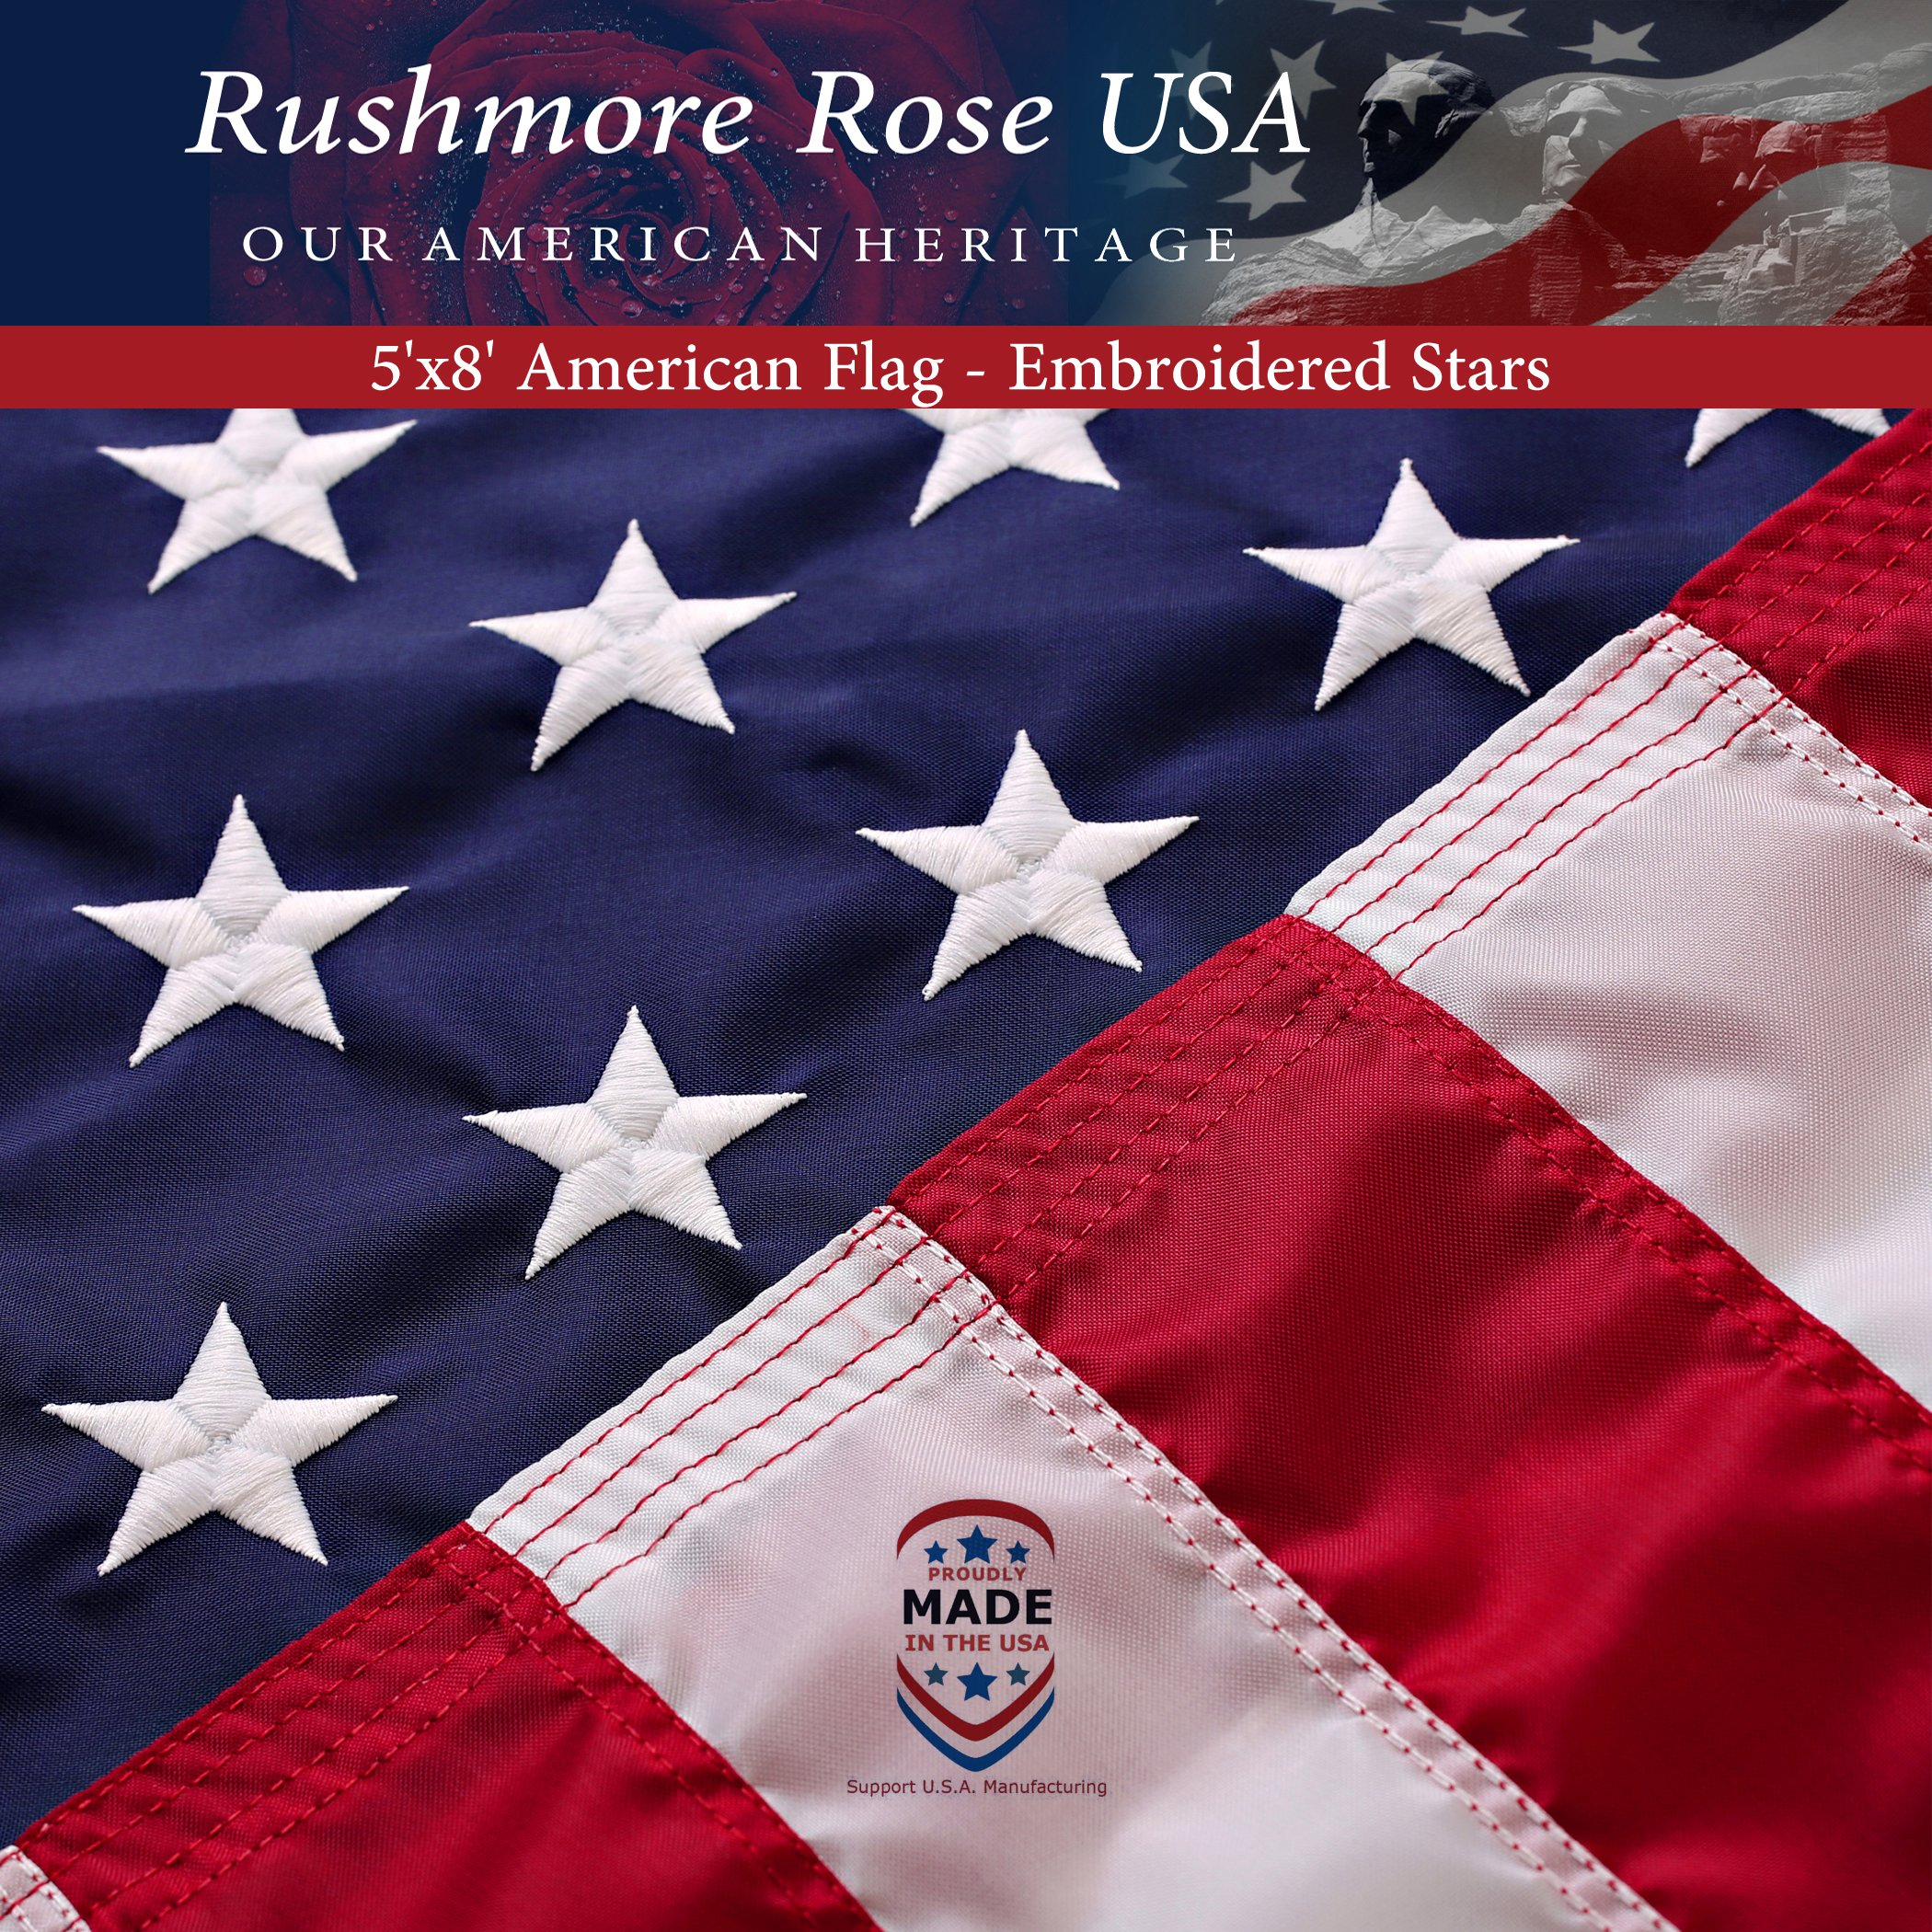 3057ee4e1fa US Flag 5x8 ft  100% Made in USA. Premium Large American Flag 5x8 ft.  Embroidered Stars and Stitched Stripes US Banner - Display with Pride